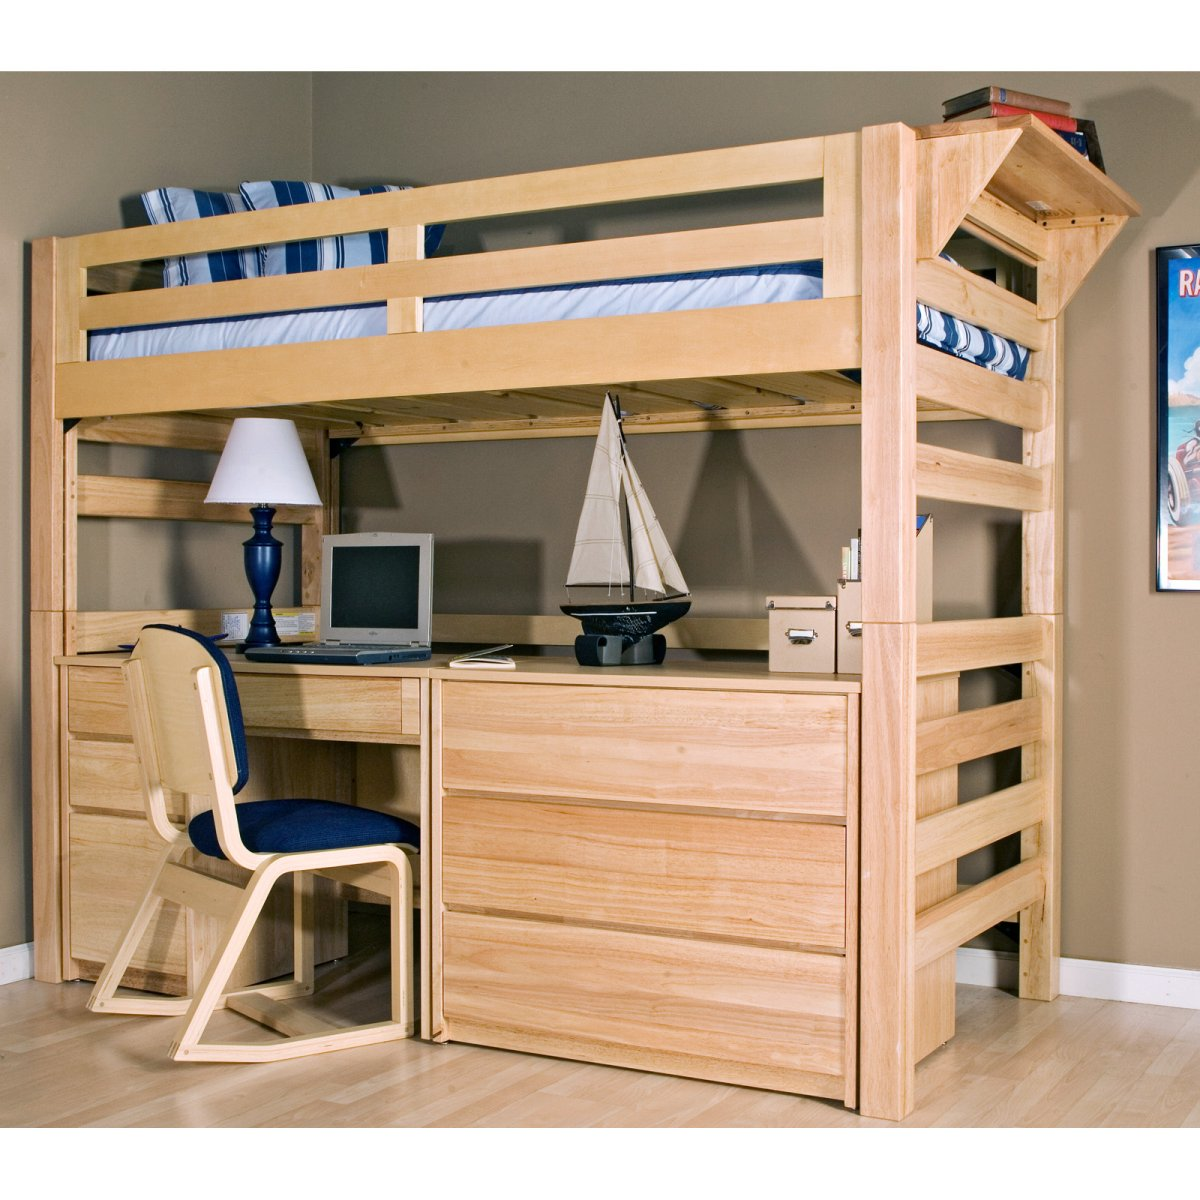 Loft bed with desk designs features inoutinterior for How to design a loft